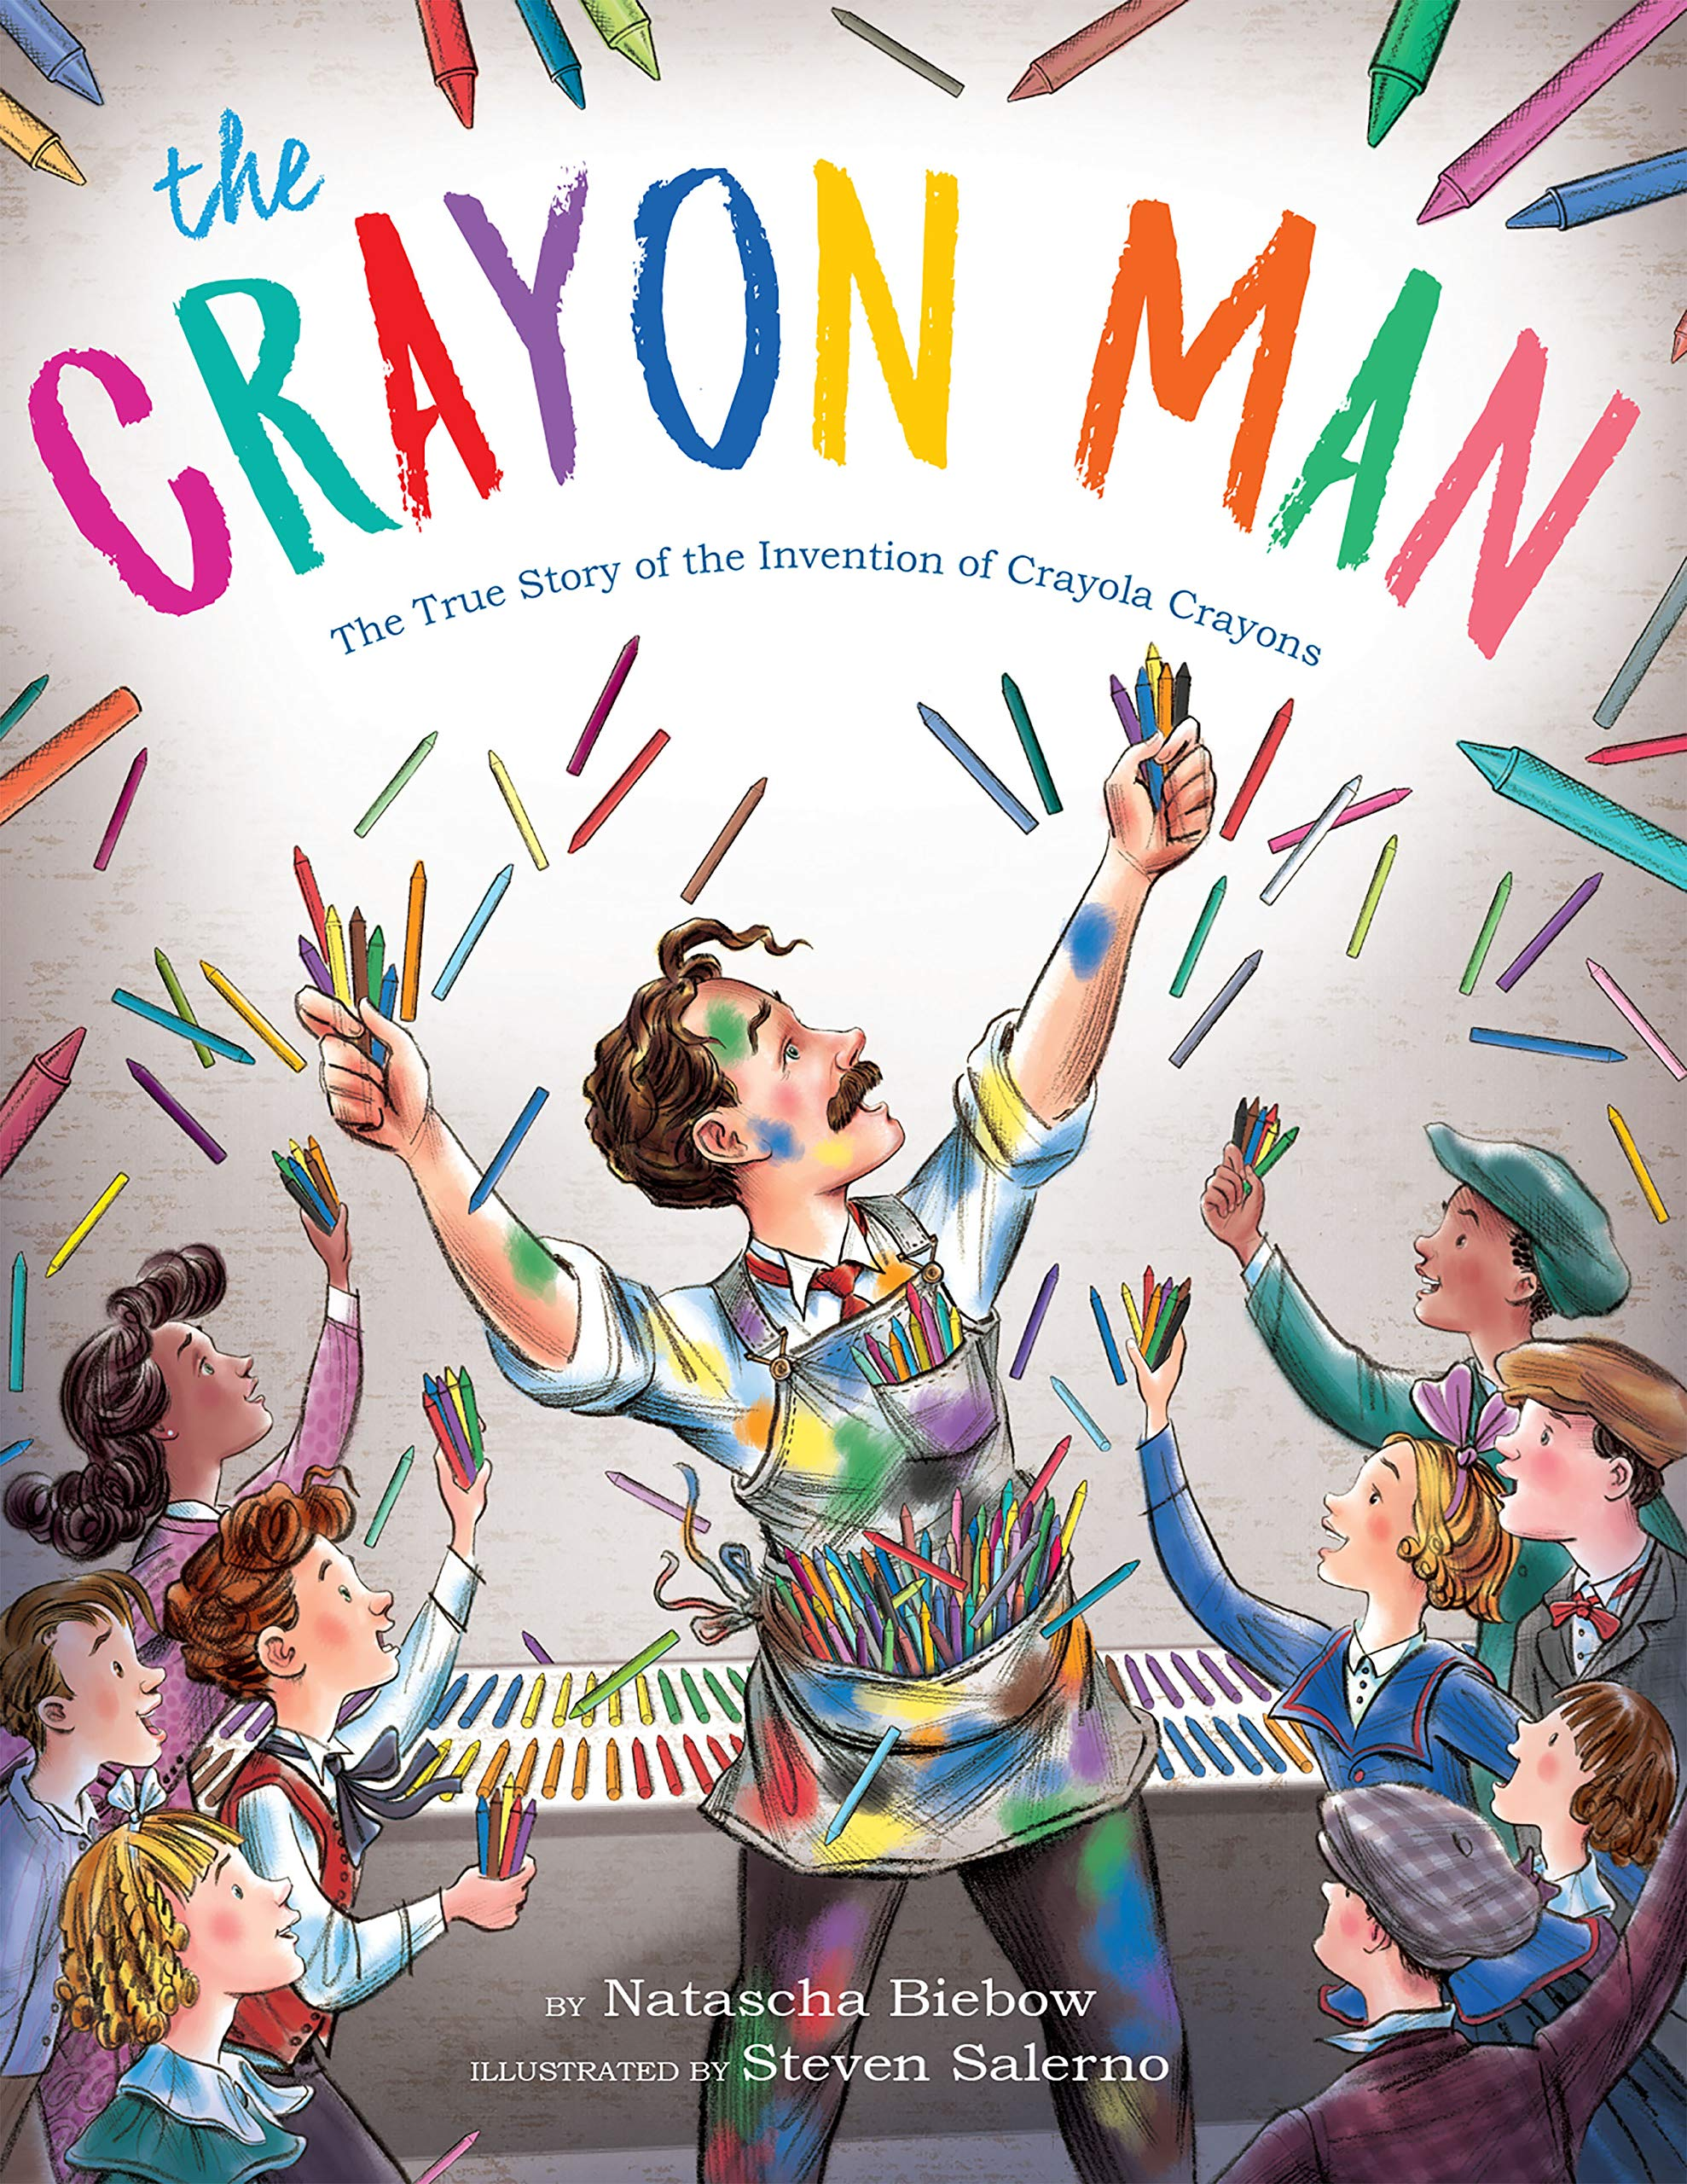 The True Story of the Invention of Crayola Crayons_Picture Book Biographies